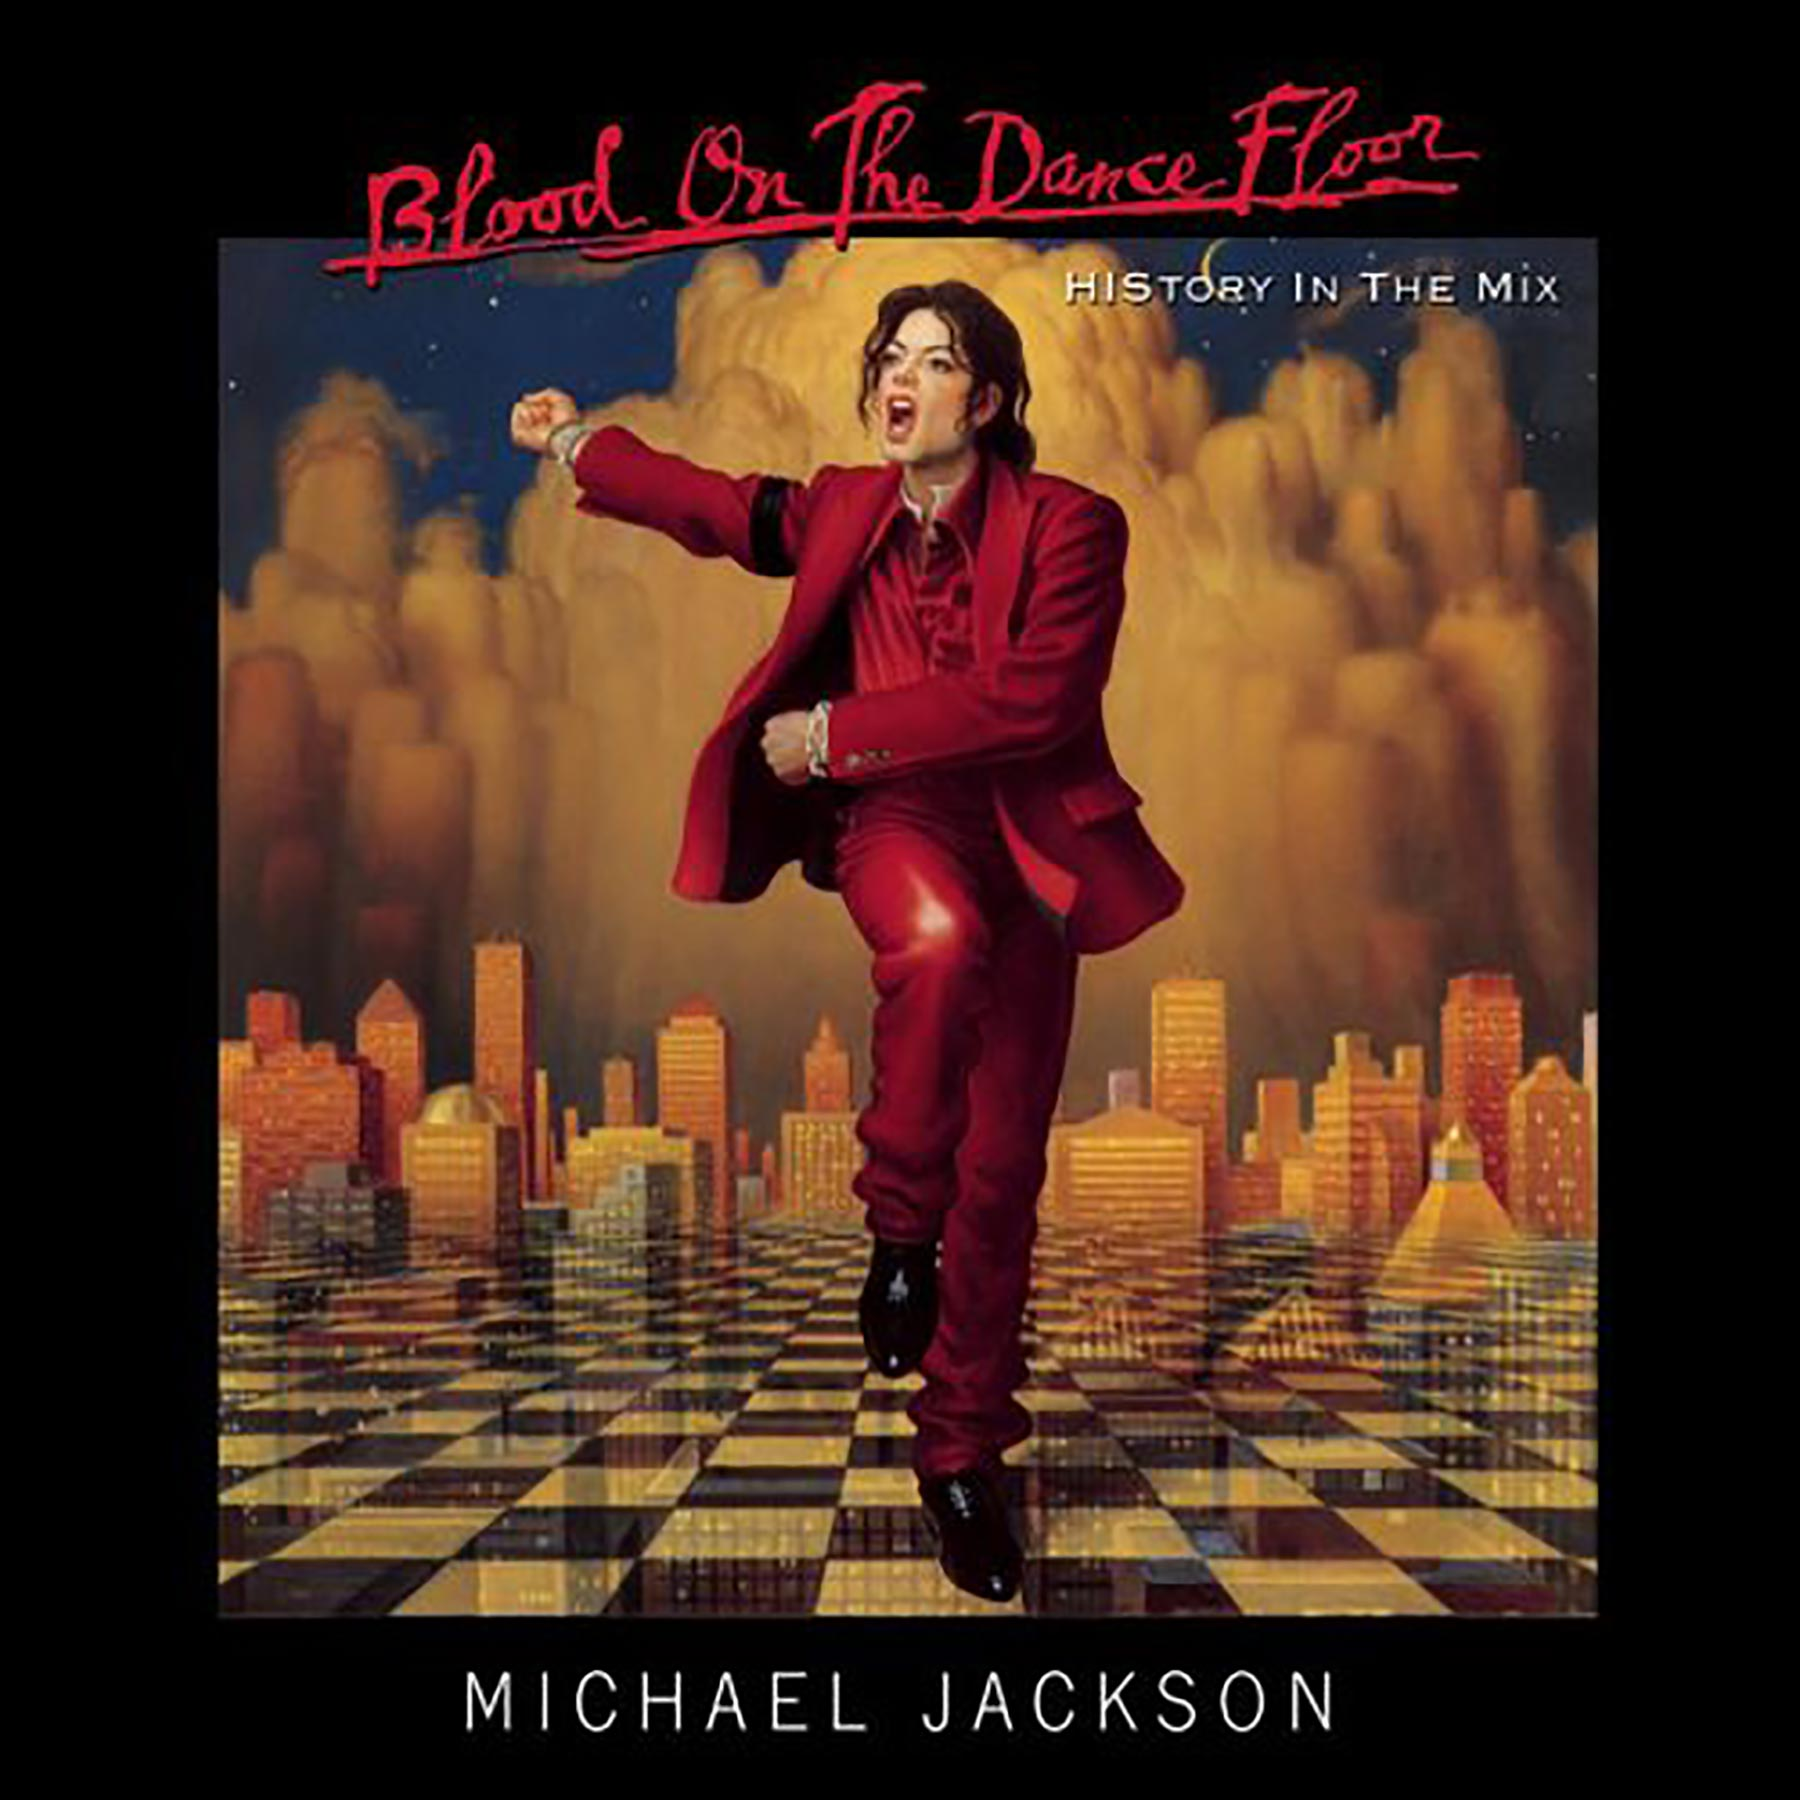 Blood on the Dance Floor: HIStory in the Mix by Michael Jackson1997